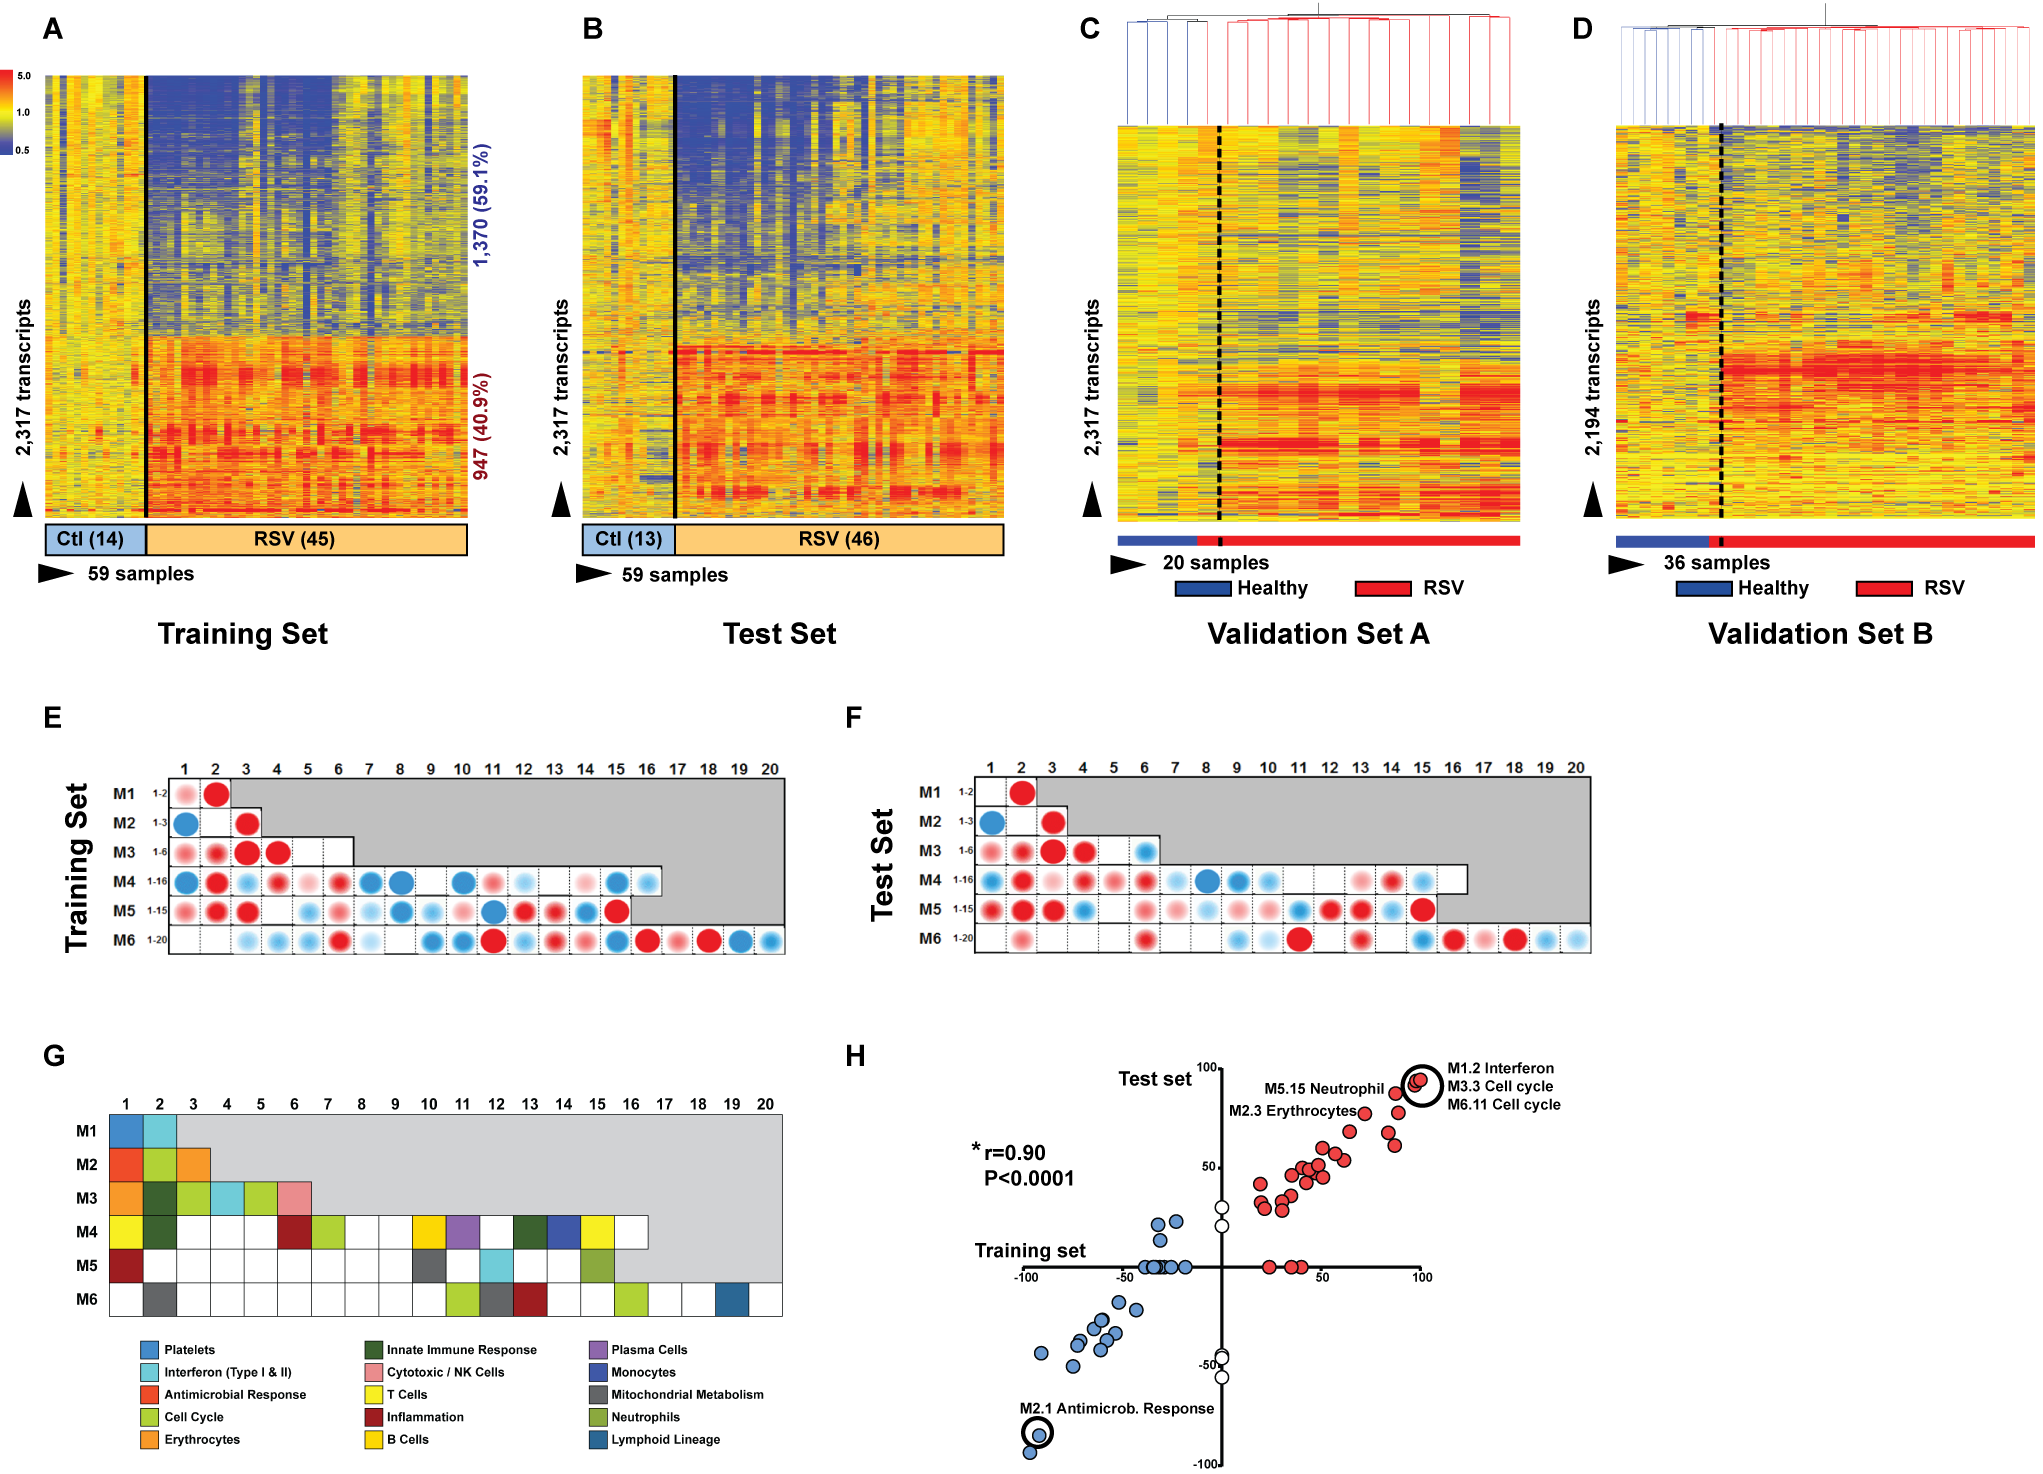 RSV transcriptional signature is characterized by overexpression of innate immunity and suppression of adaptive immunity.